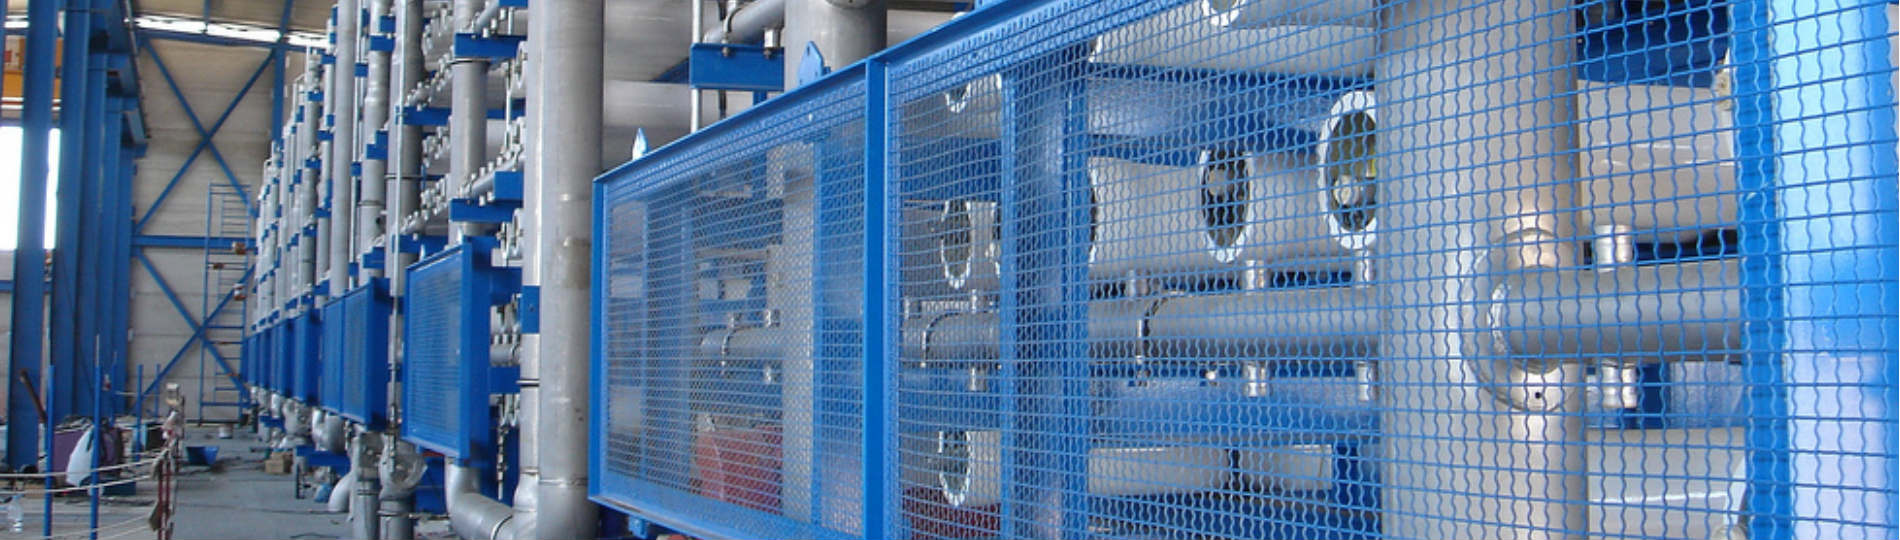 Desalination water plant drinkable